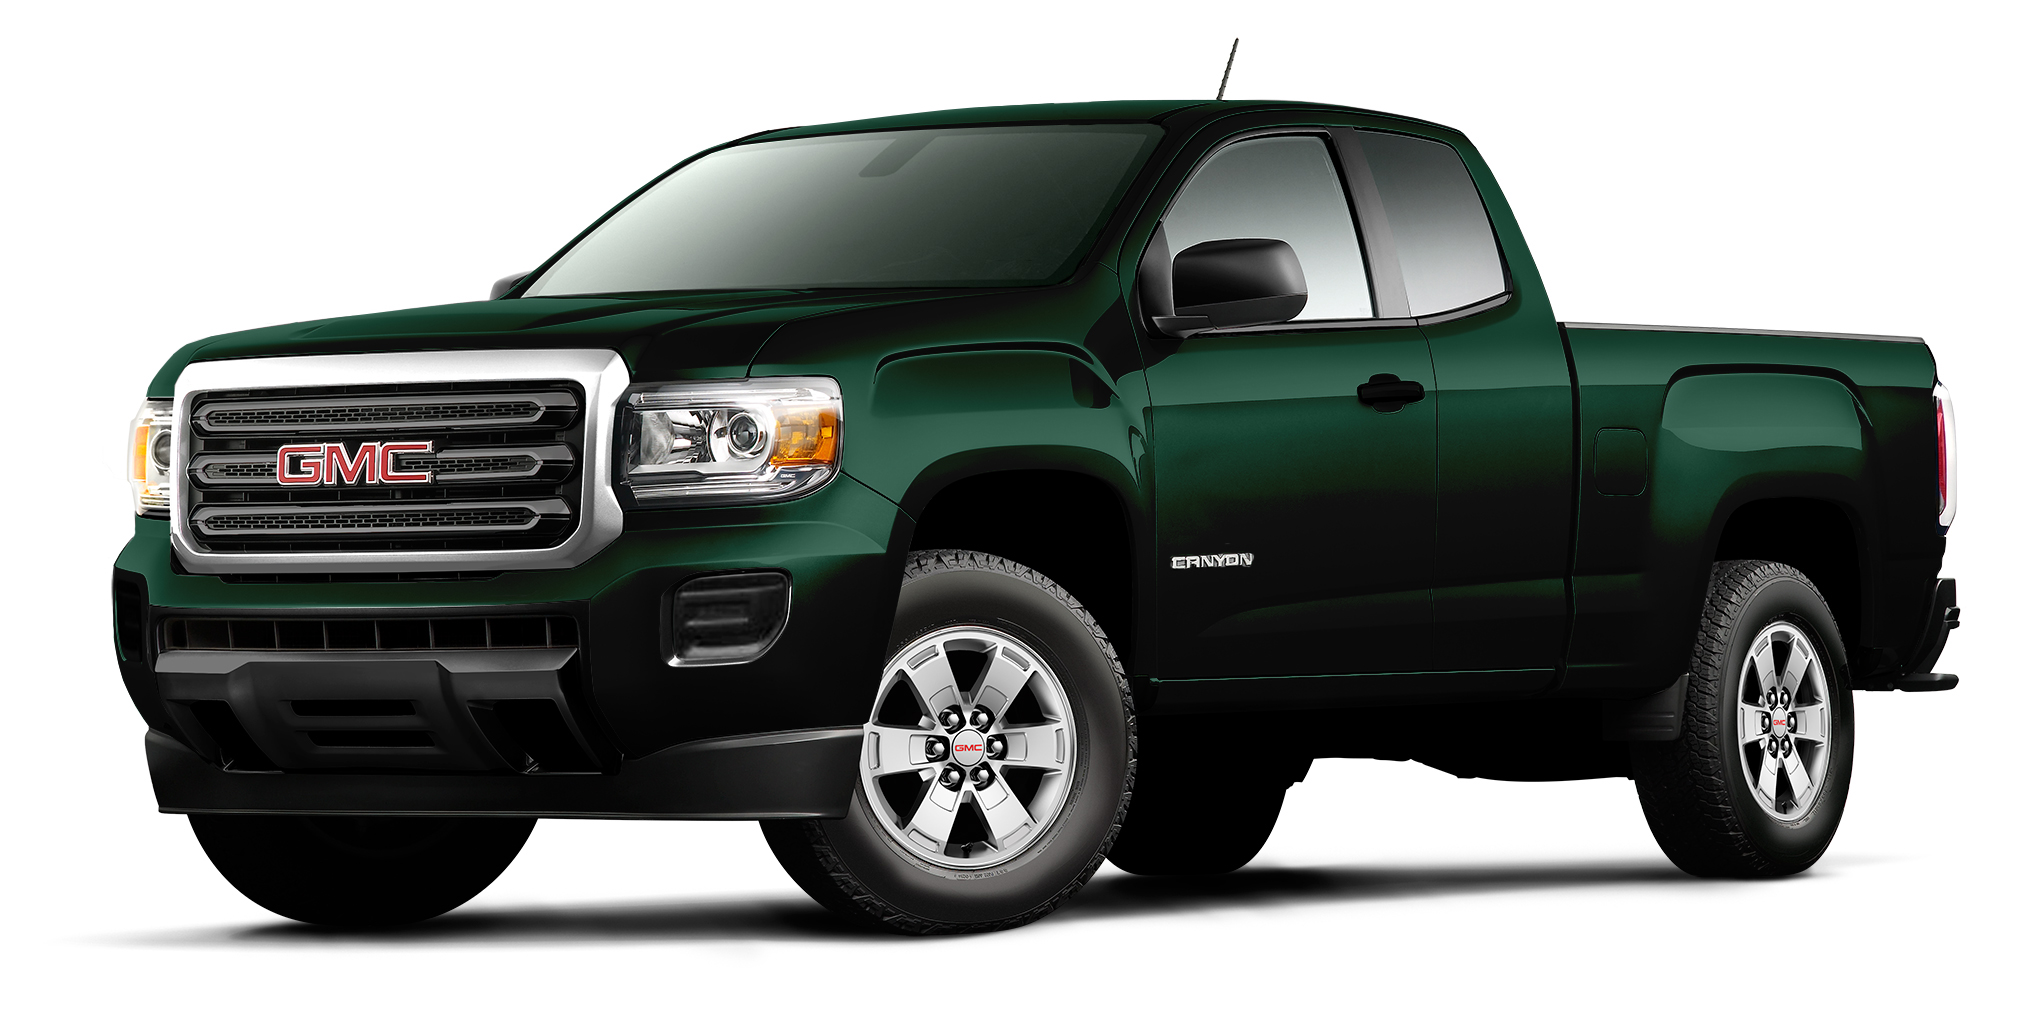 2017 gmc canyon emerald winnipeg